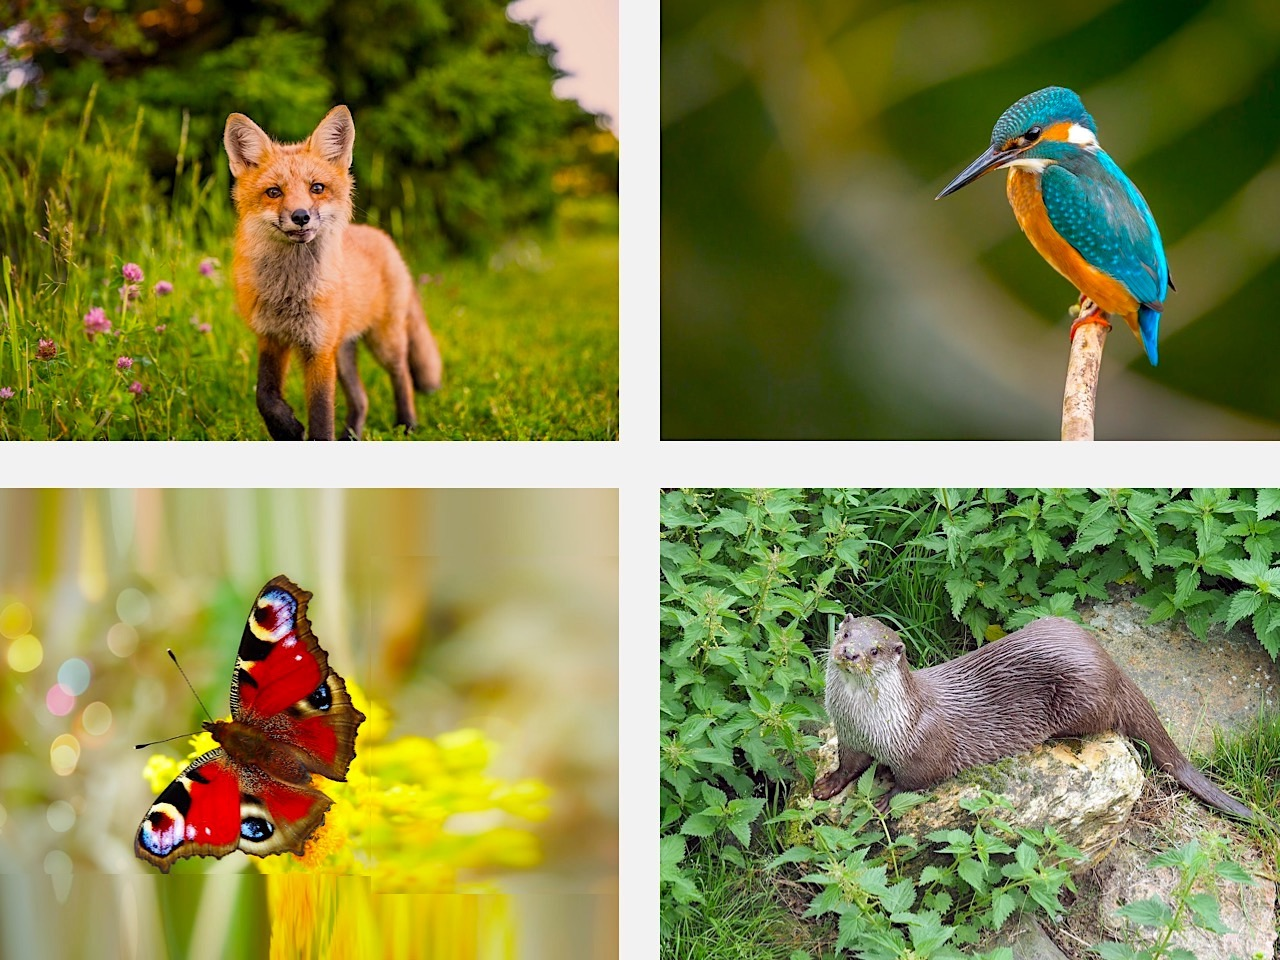 Four pictures of a fox, kingfisher, otter and butterfly